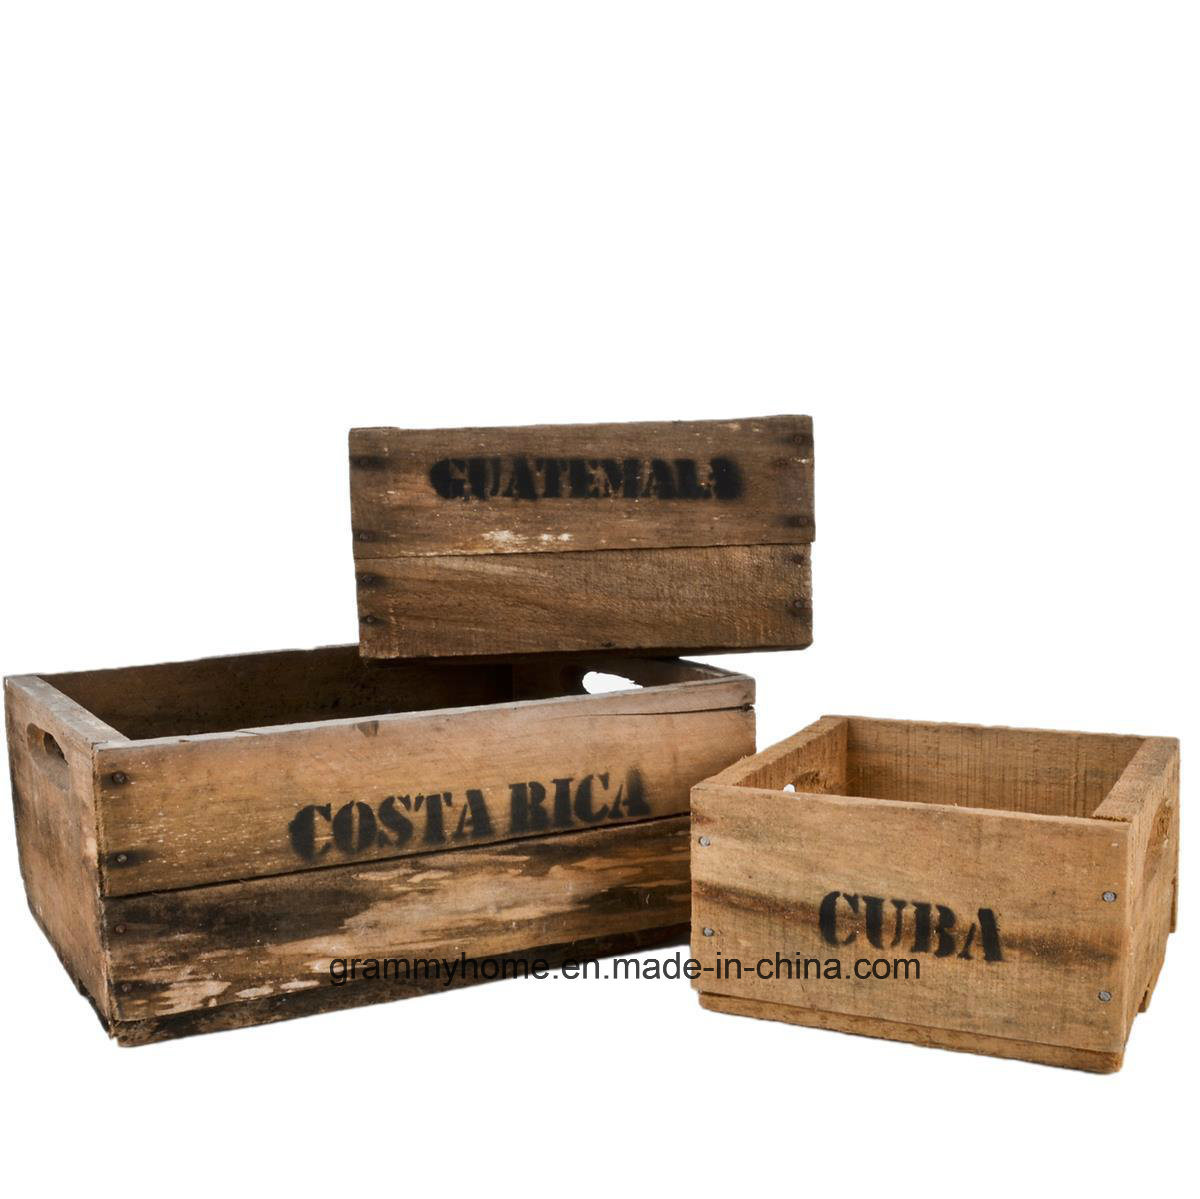 China Home Storage Wooden Crate Boxes 3 Pack Nostalgia Small Furniture China Personalised Wooden Beer Crate And Vintage Wooden Box Price